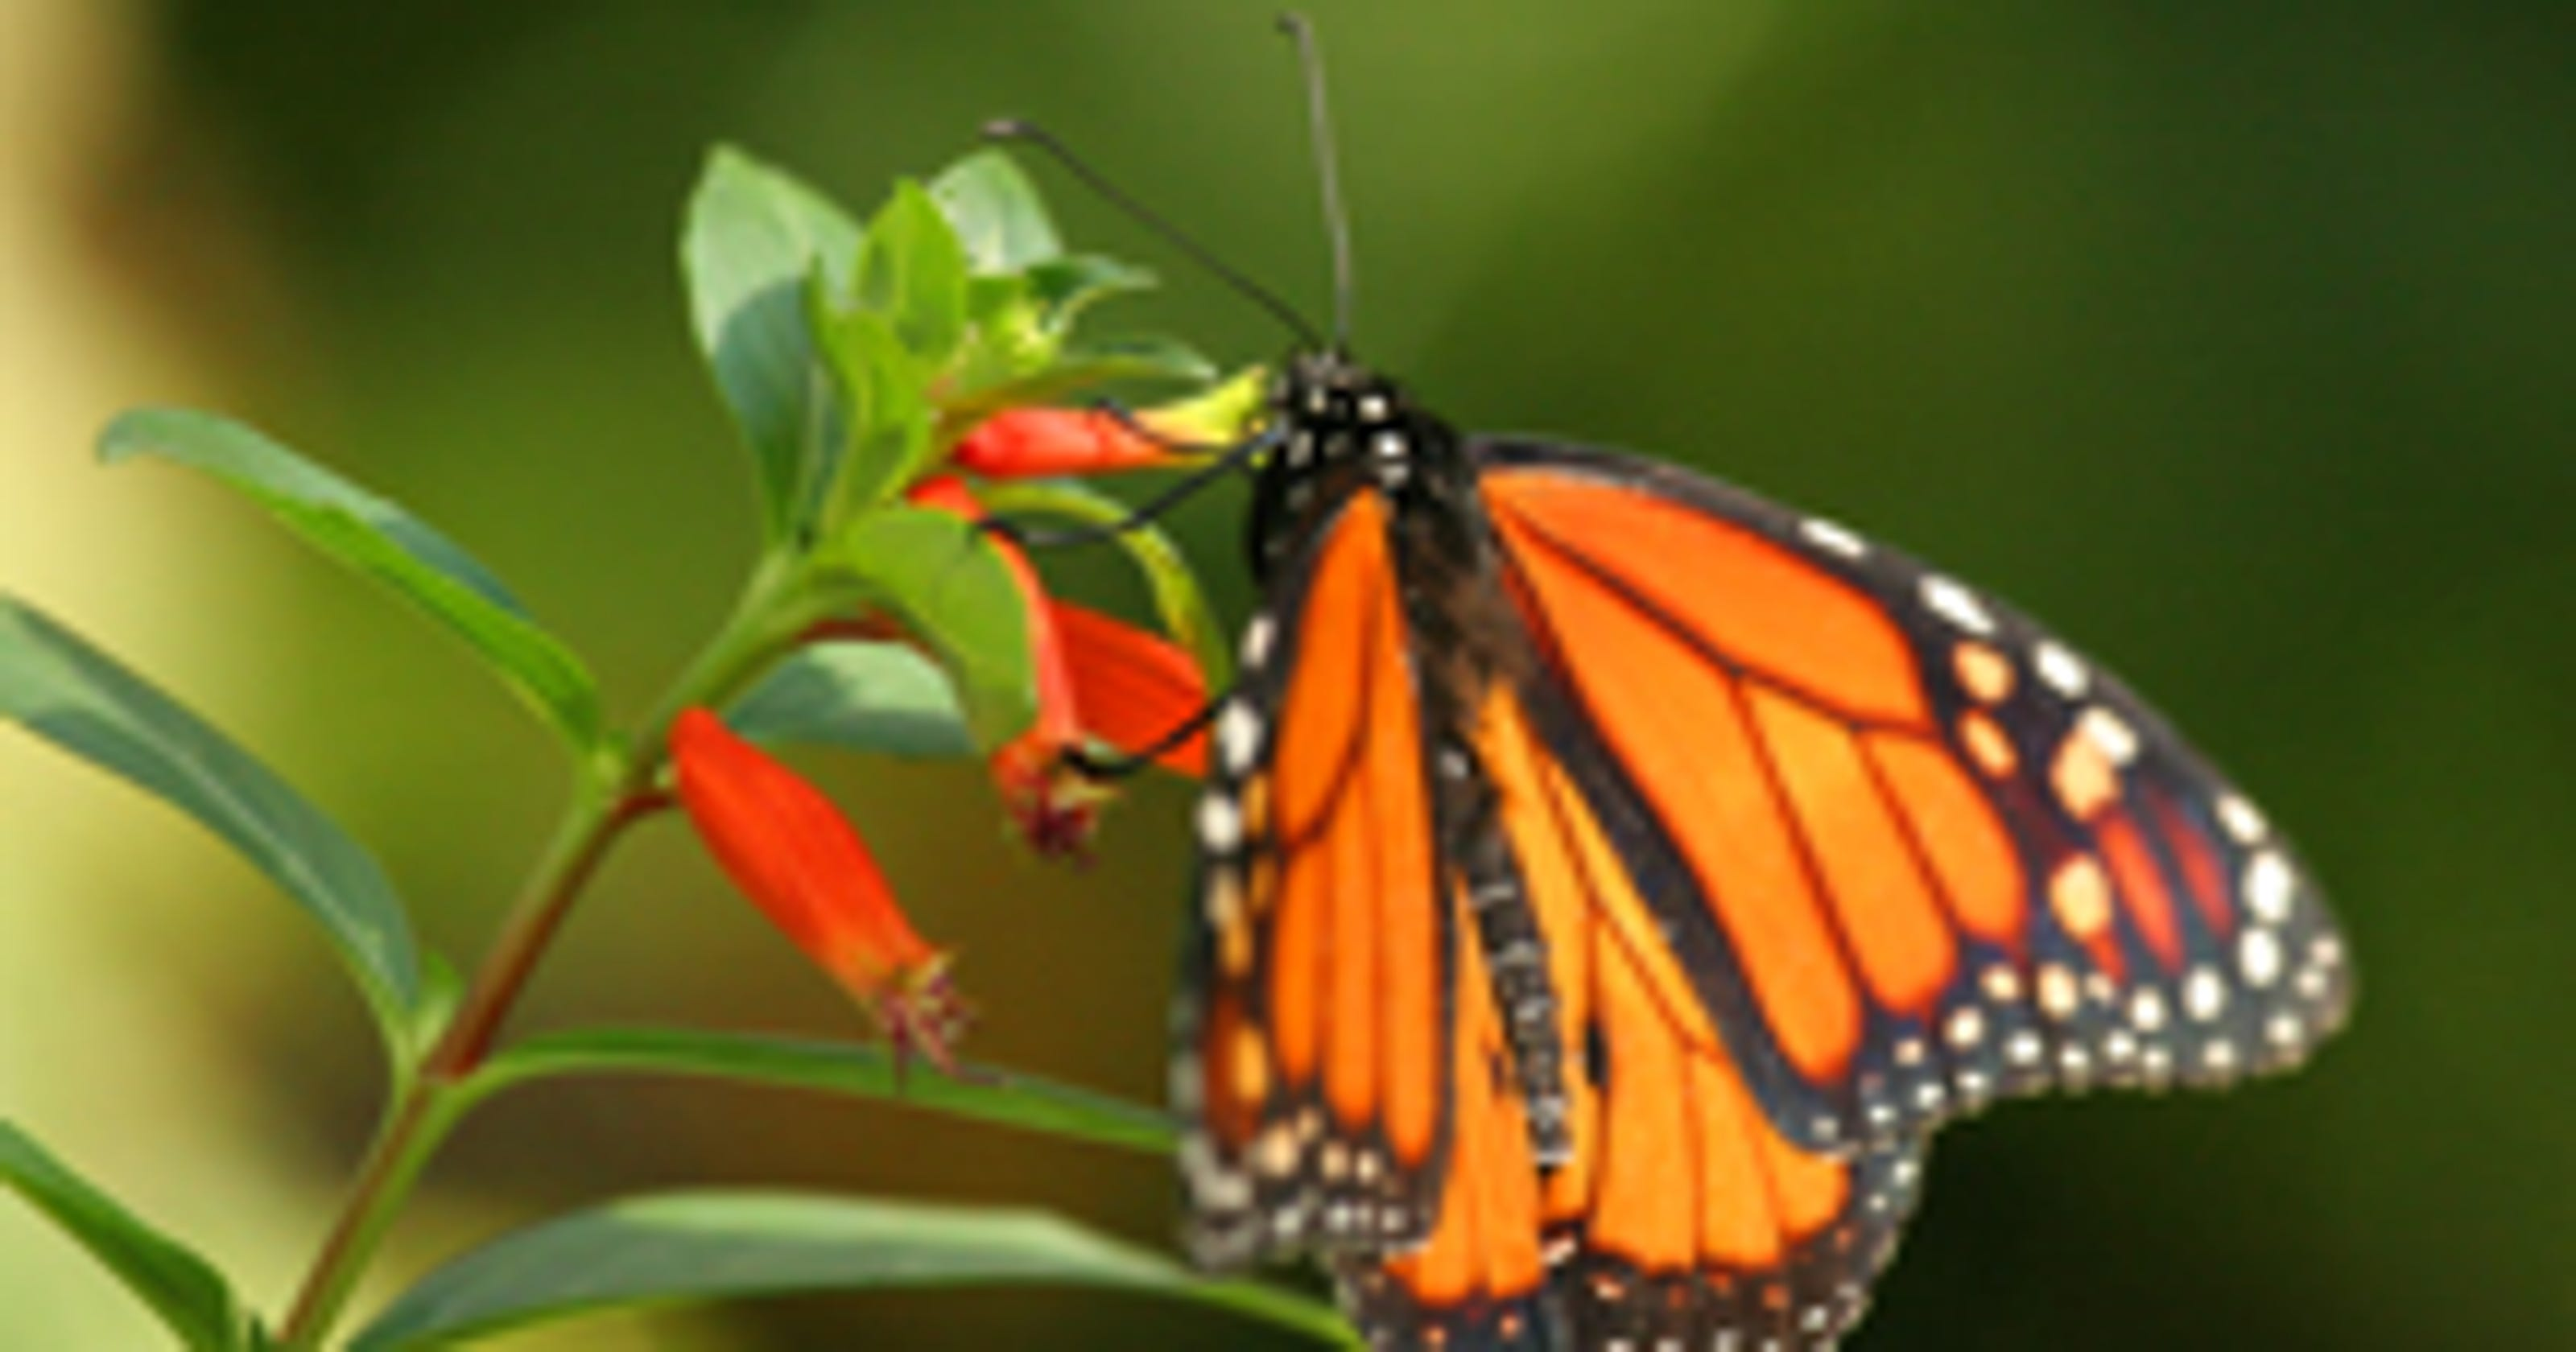 panhandle butterfly house reopening - Uf Butterfly Garden